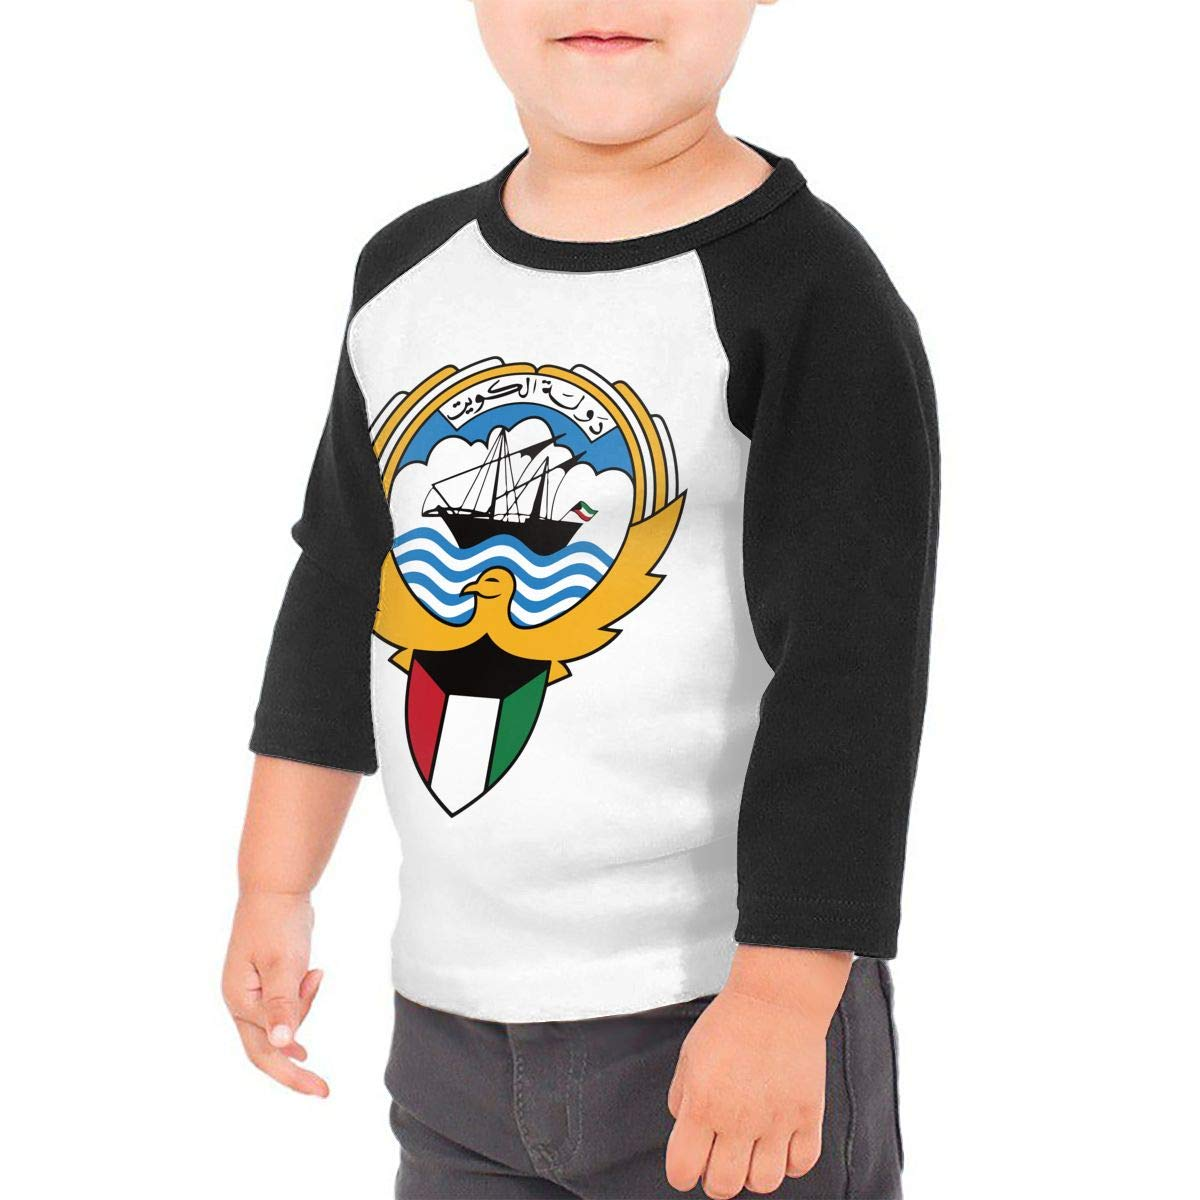 Sailing Logo Unisex 100/% Cotton Childrens 3//4 Sleeves T-Shirt Top Tees 2T~5//6T